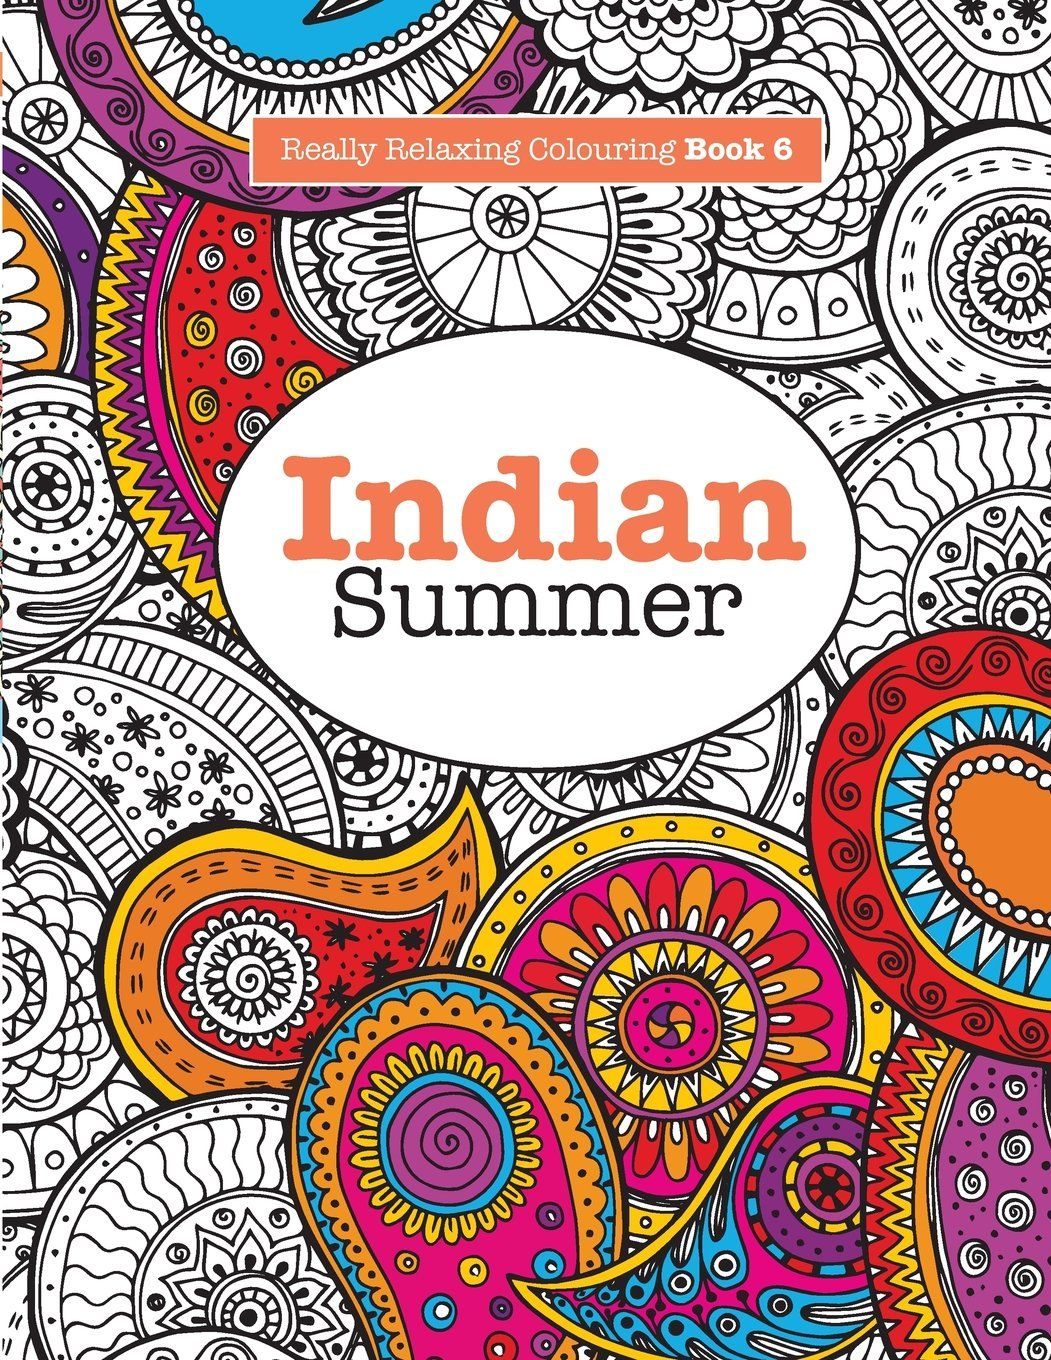 amazonsmile really relaxing colouring book 6 indian summer a jewelled journey through indian pattern and colour really relaxing colouring books volume - Colouring Books